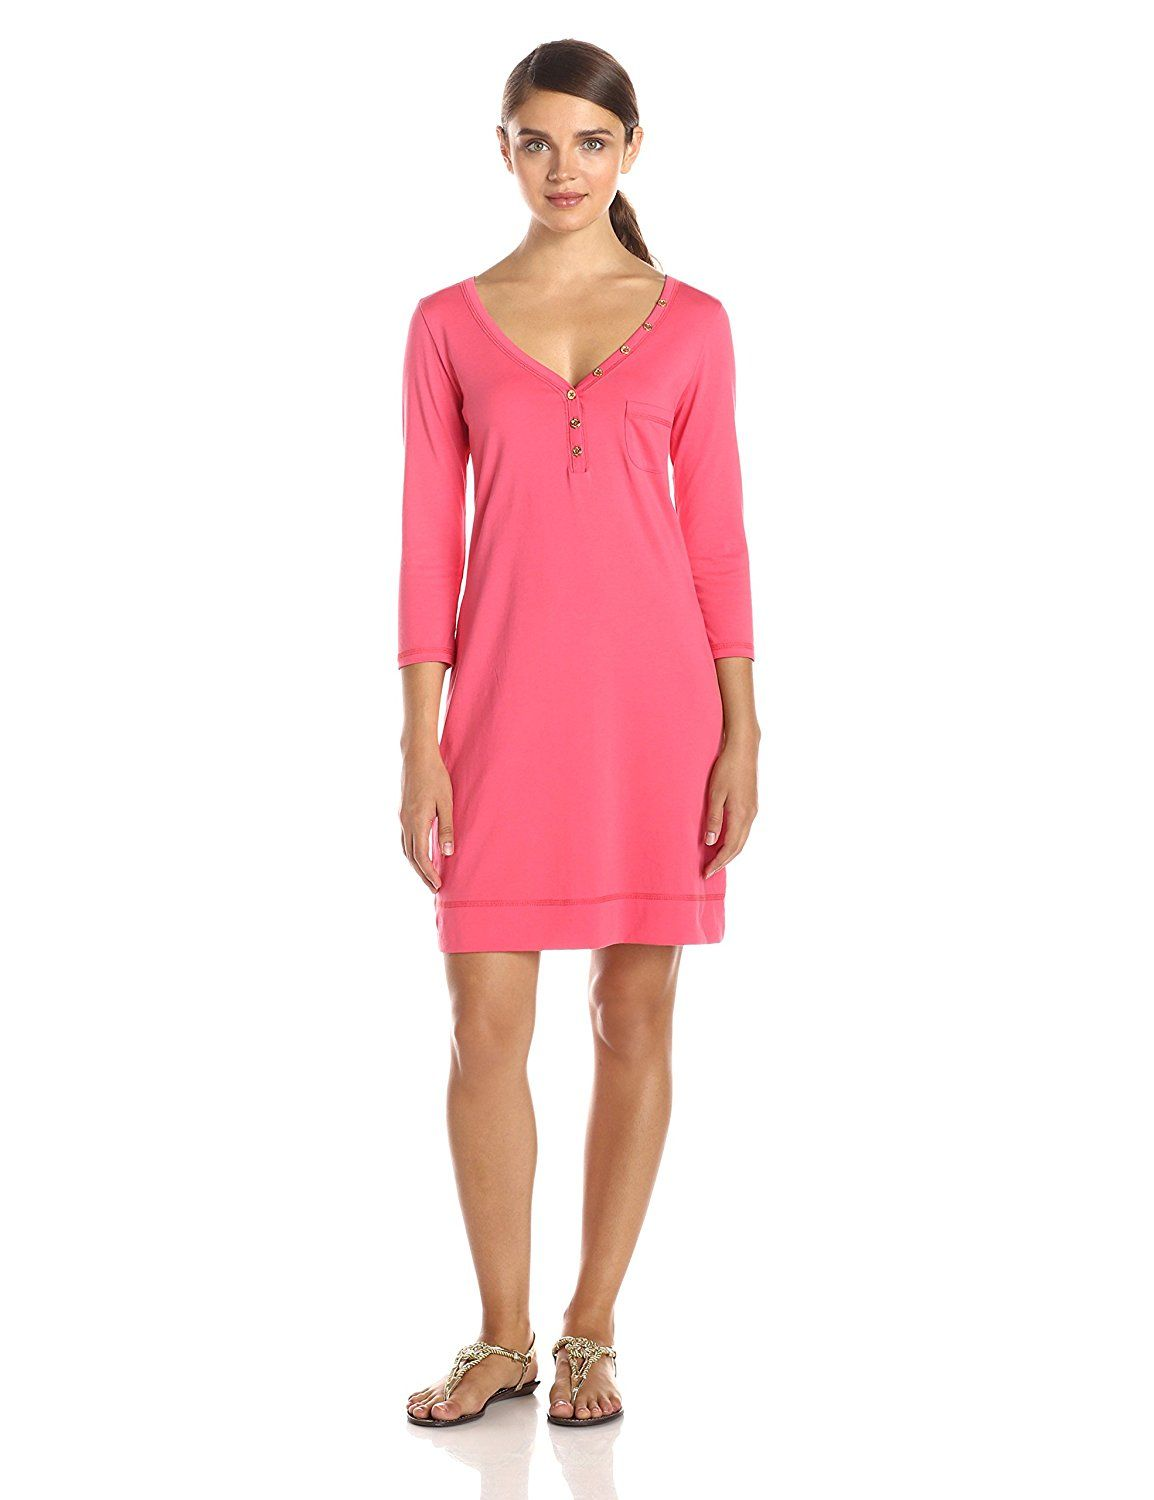 d7e1f3e0b4 Lilly Pulitzer Women s Palmetto V-Neck T-Shirt Dress -- Insider s special  review you can t miss. Read more   Women s dresses